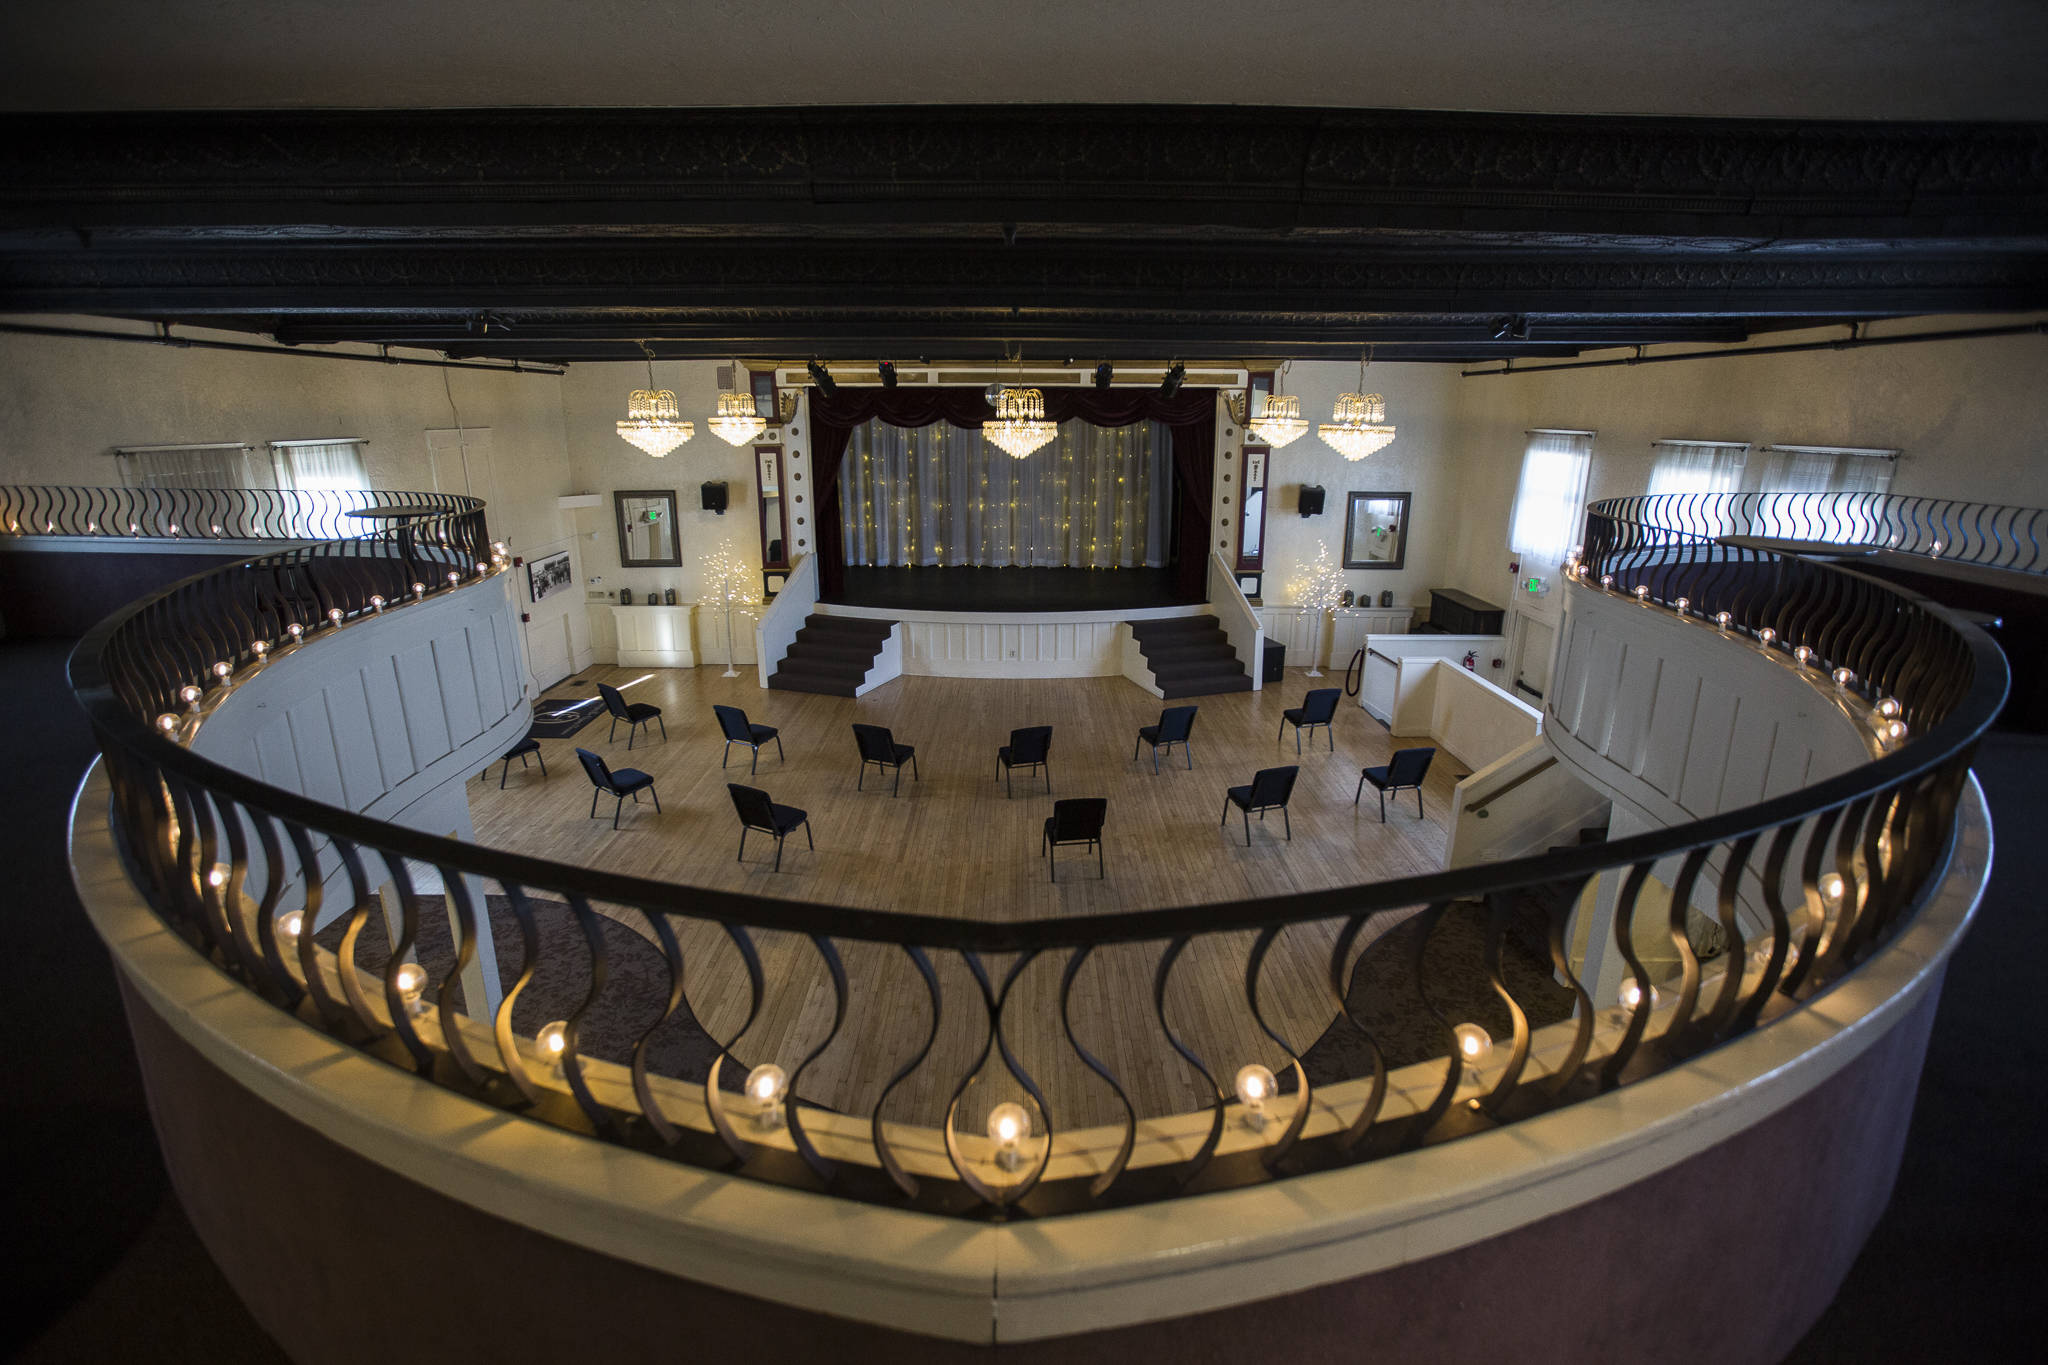 The Marysville Opera House was originally built in 1911 and has recently been renovated. It is now partially open after a year-long shutdown due to the pandemic. (Olivia Vanni / The Herald)